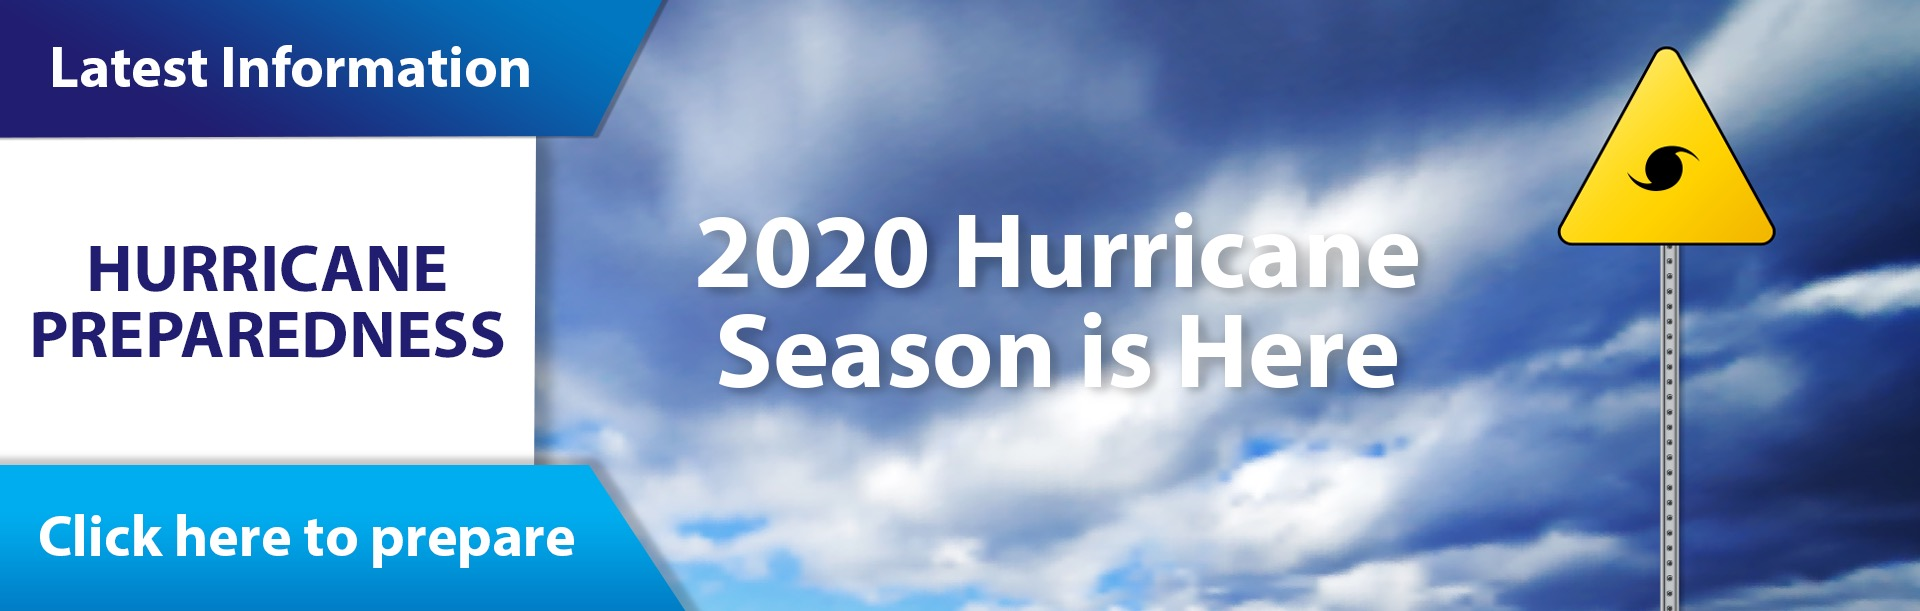 /PortCanaveral/media/Communications/2018/hurricanePreparedness-1_1.jpeg?ext=.jpeg